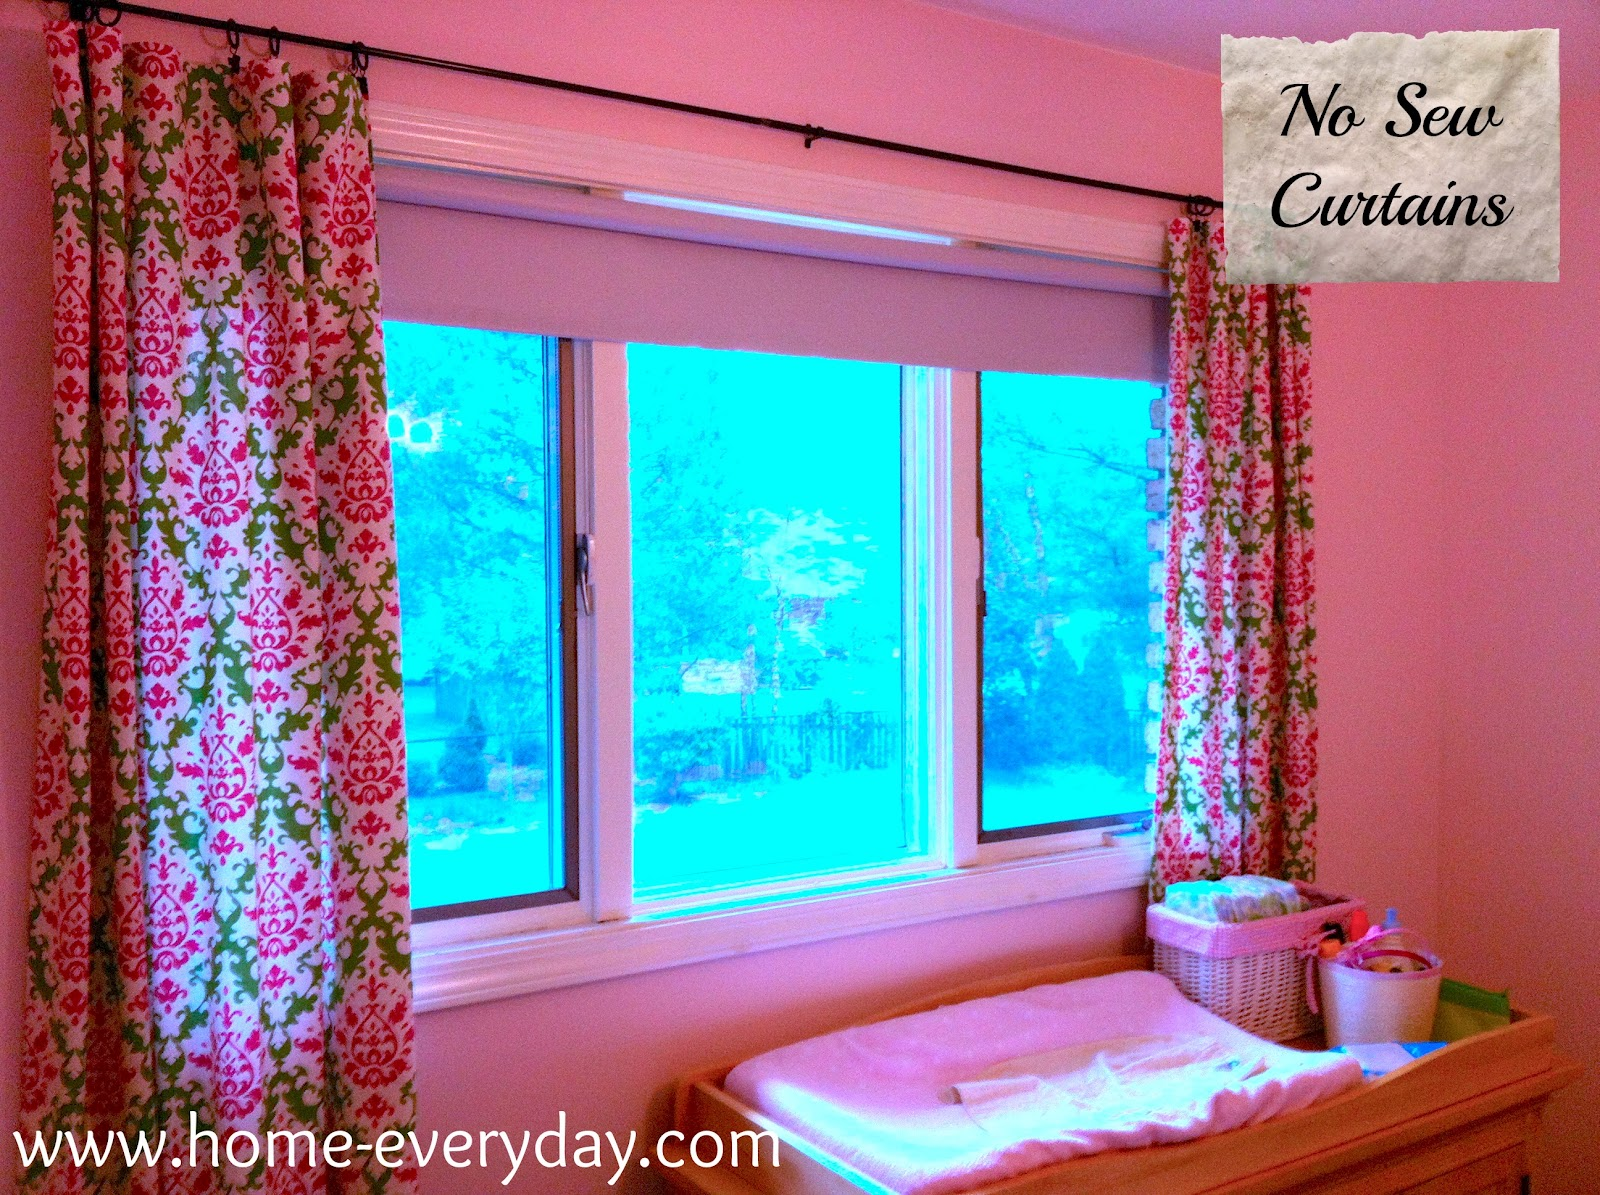 How to make cheap curtains without sewing curtain How to make a valance without sewing